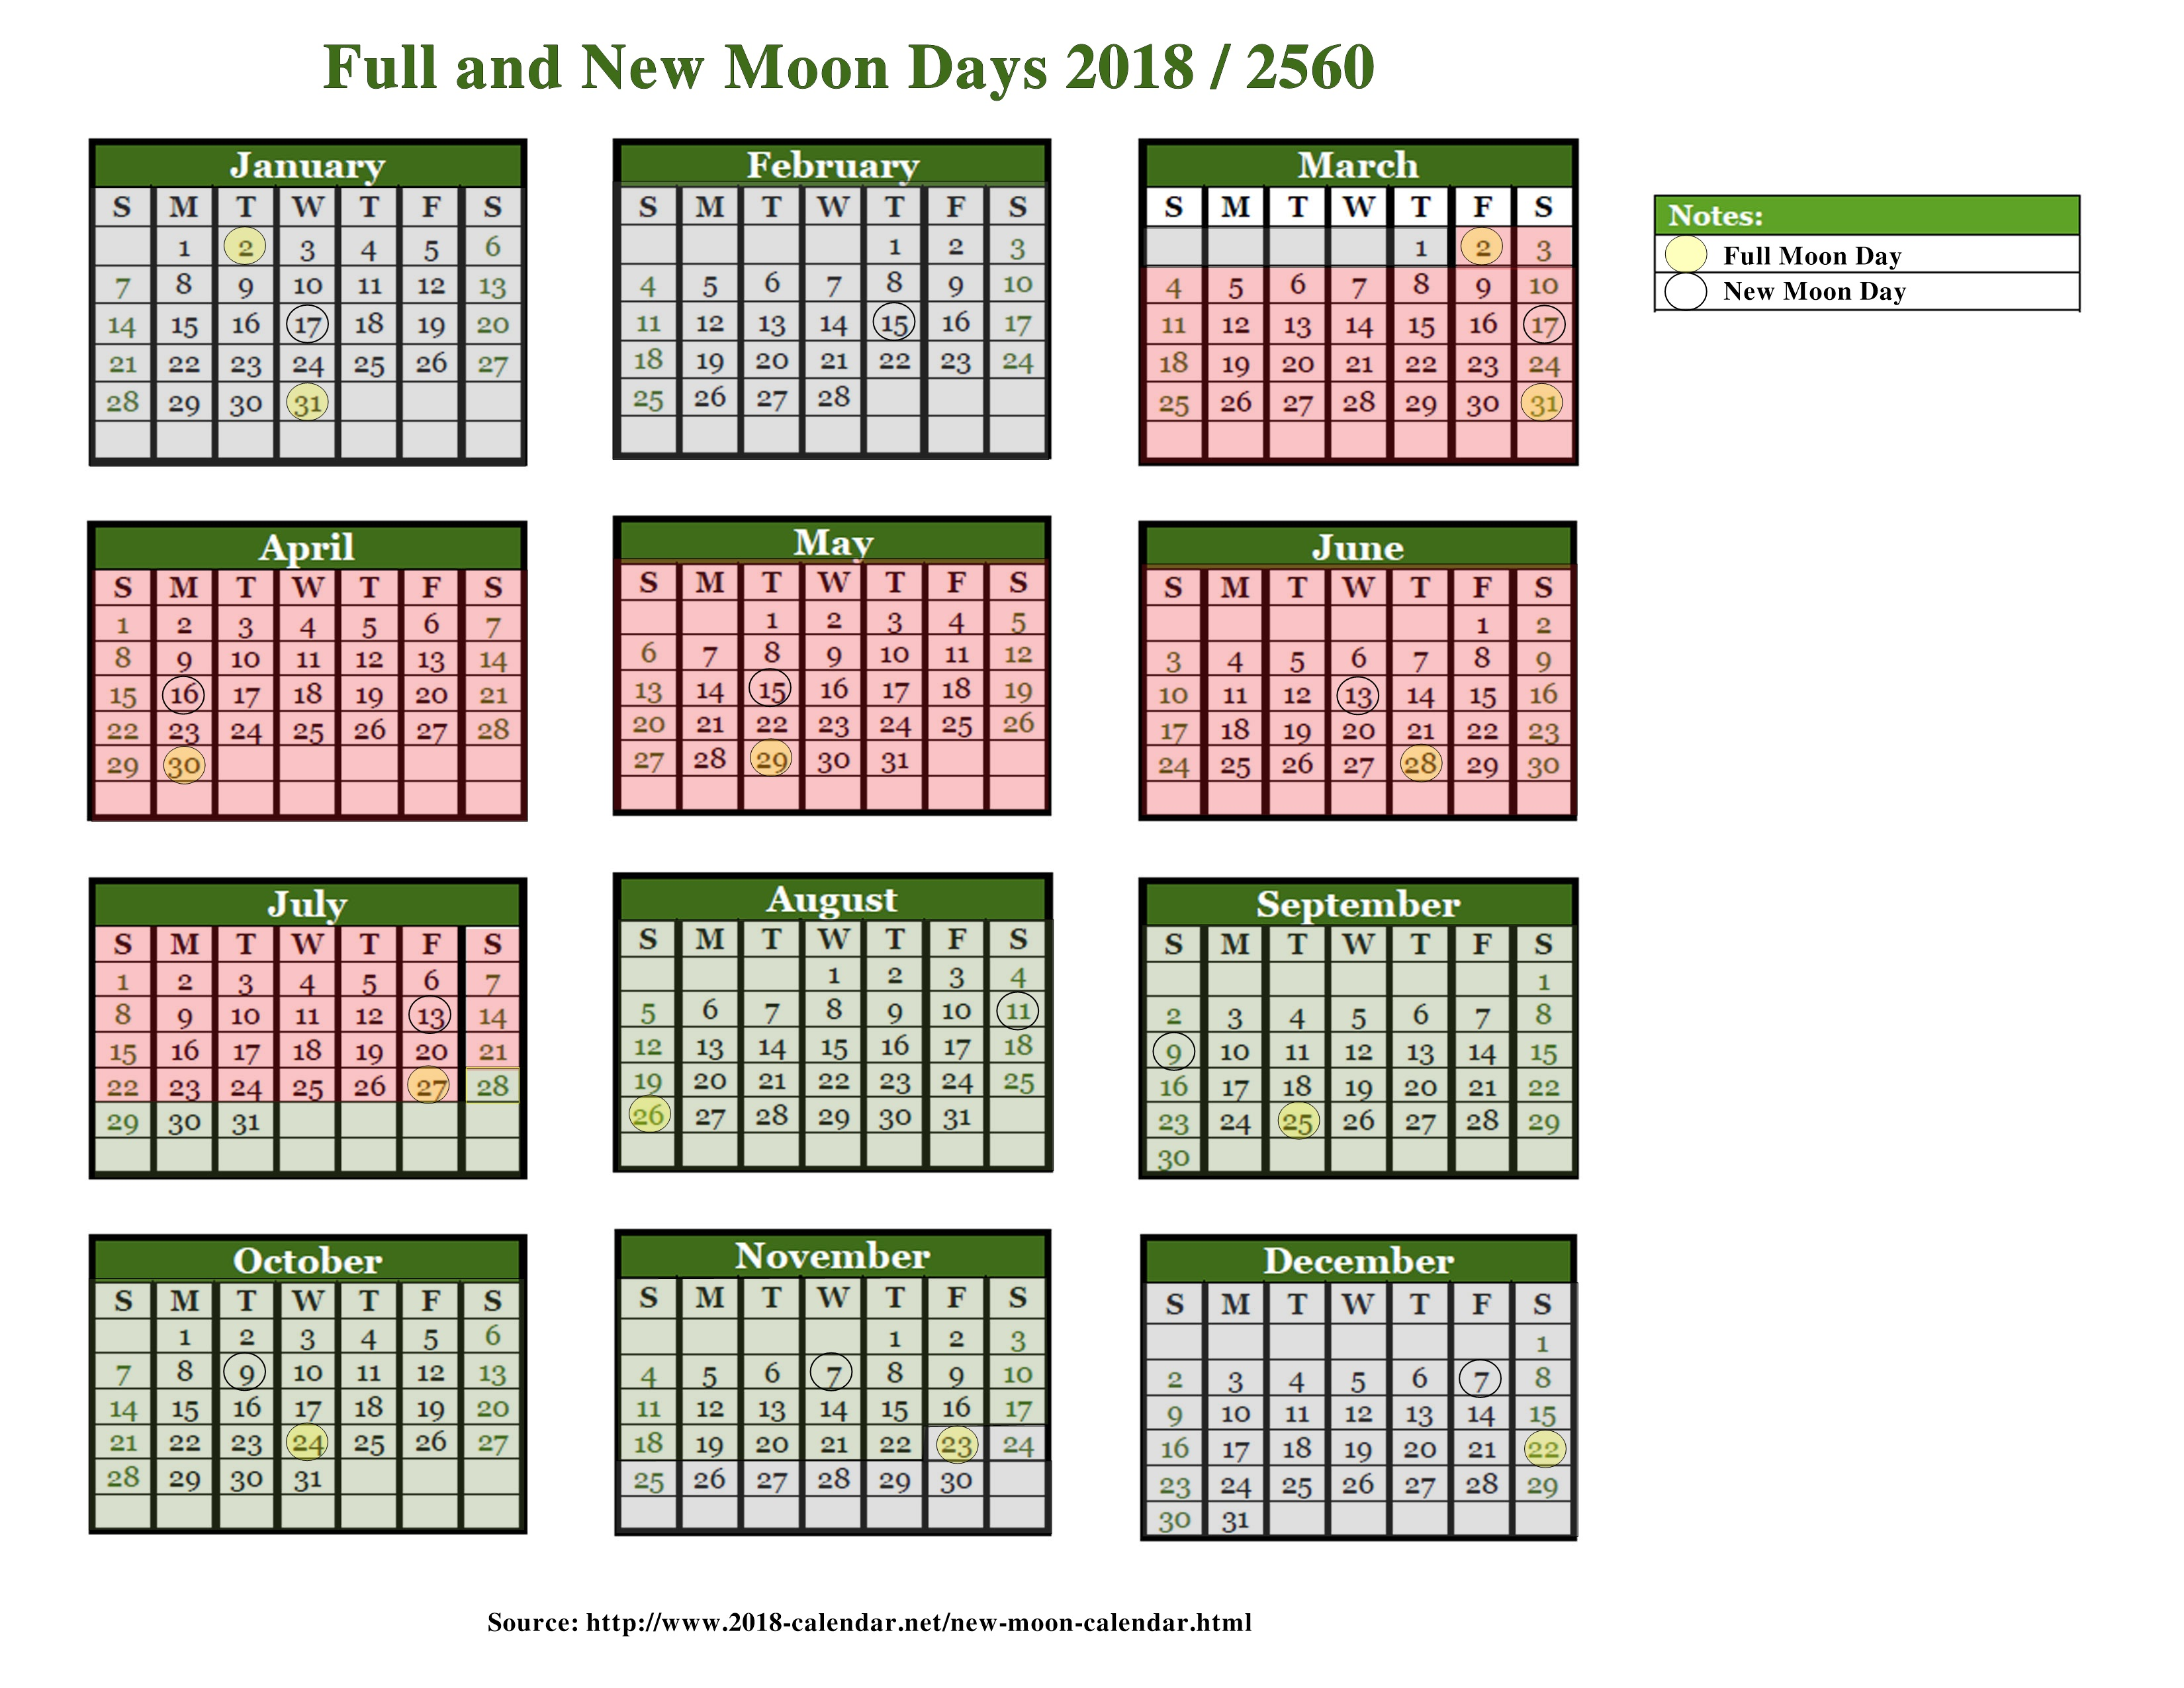 2018 Full and New Moons